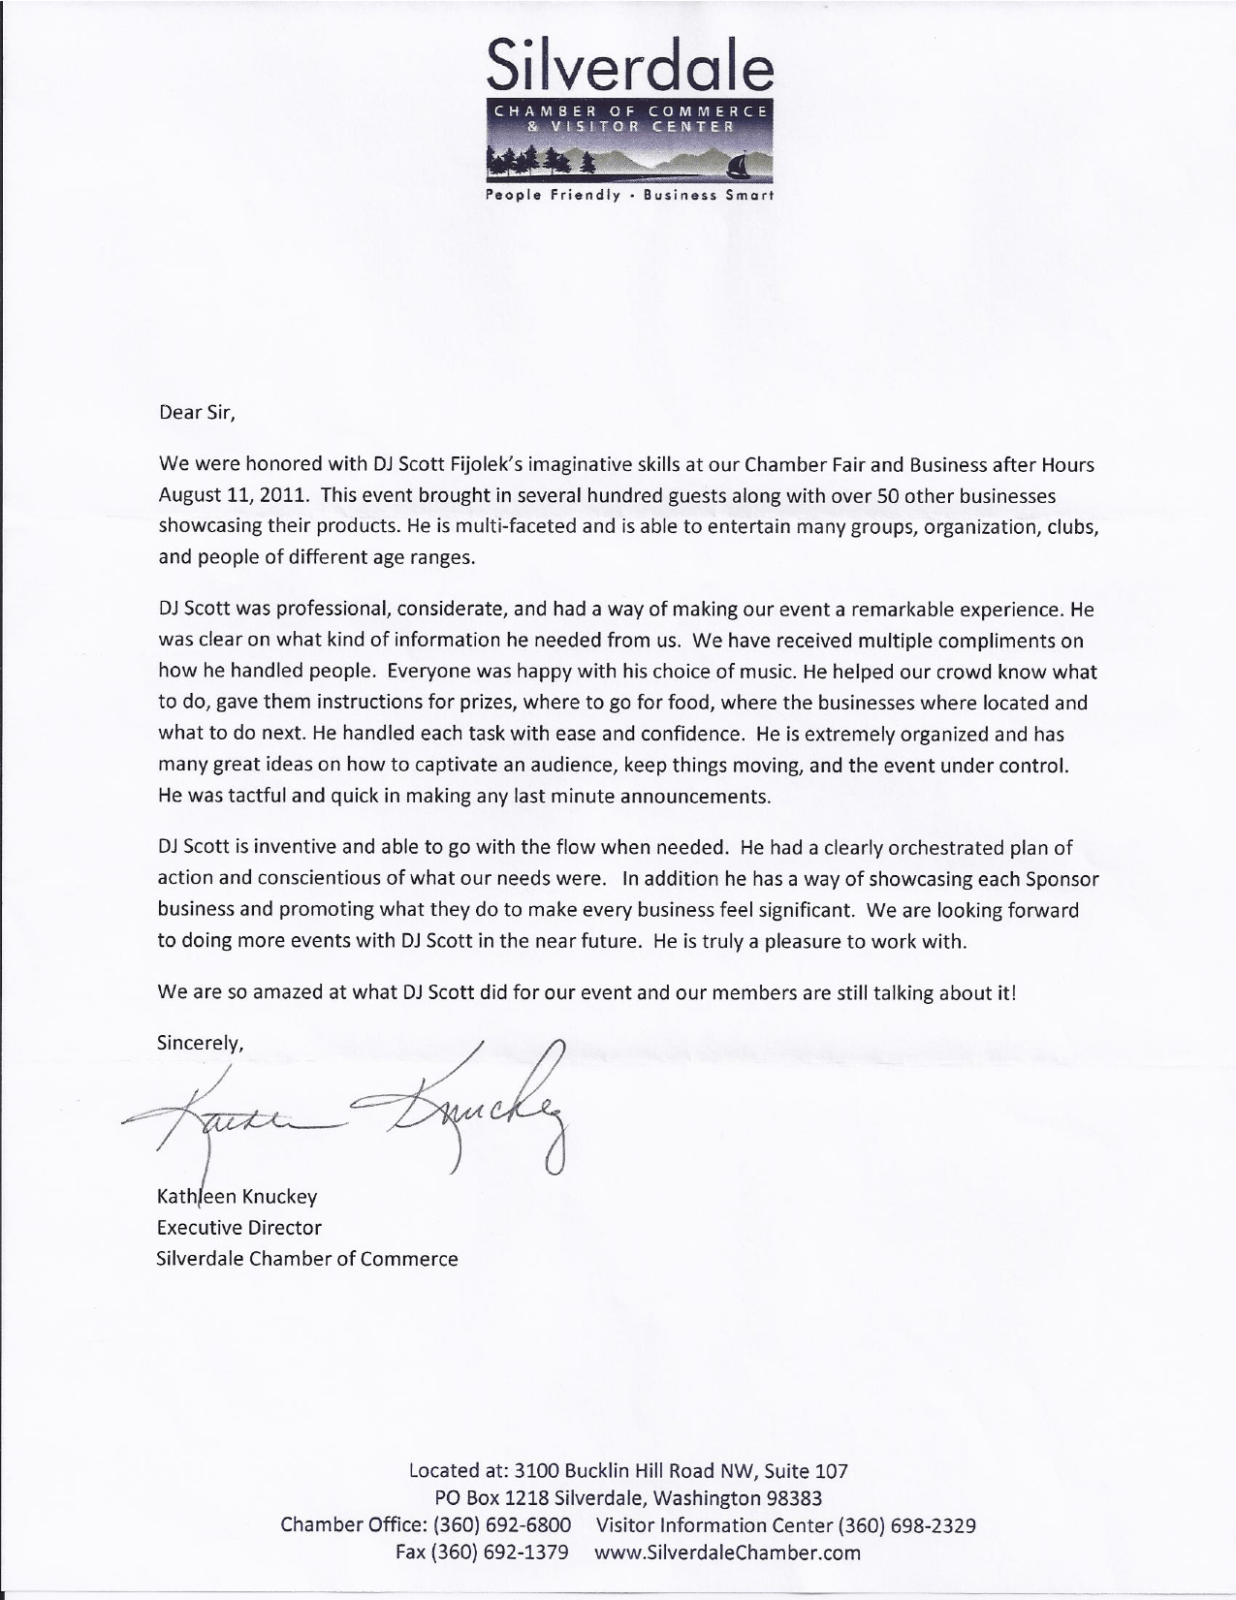 letter of recommendation from the silverdale chamber of commerce 98383 wwwsilverdalechambercom